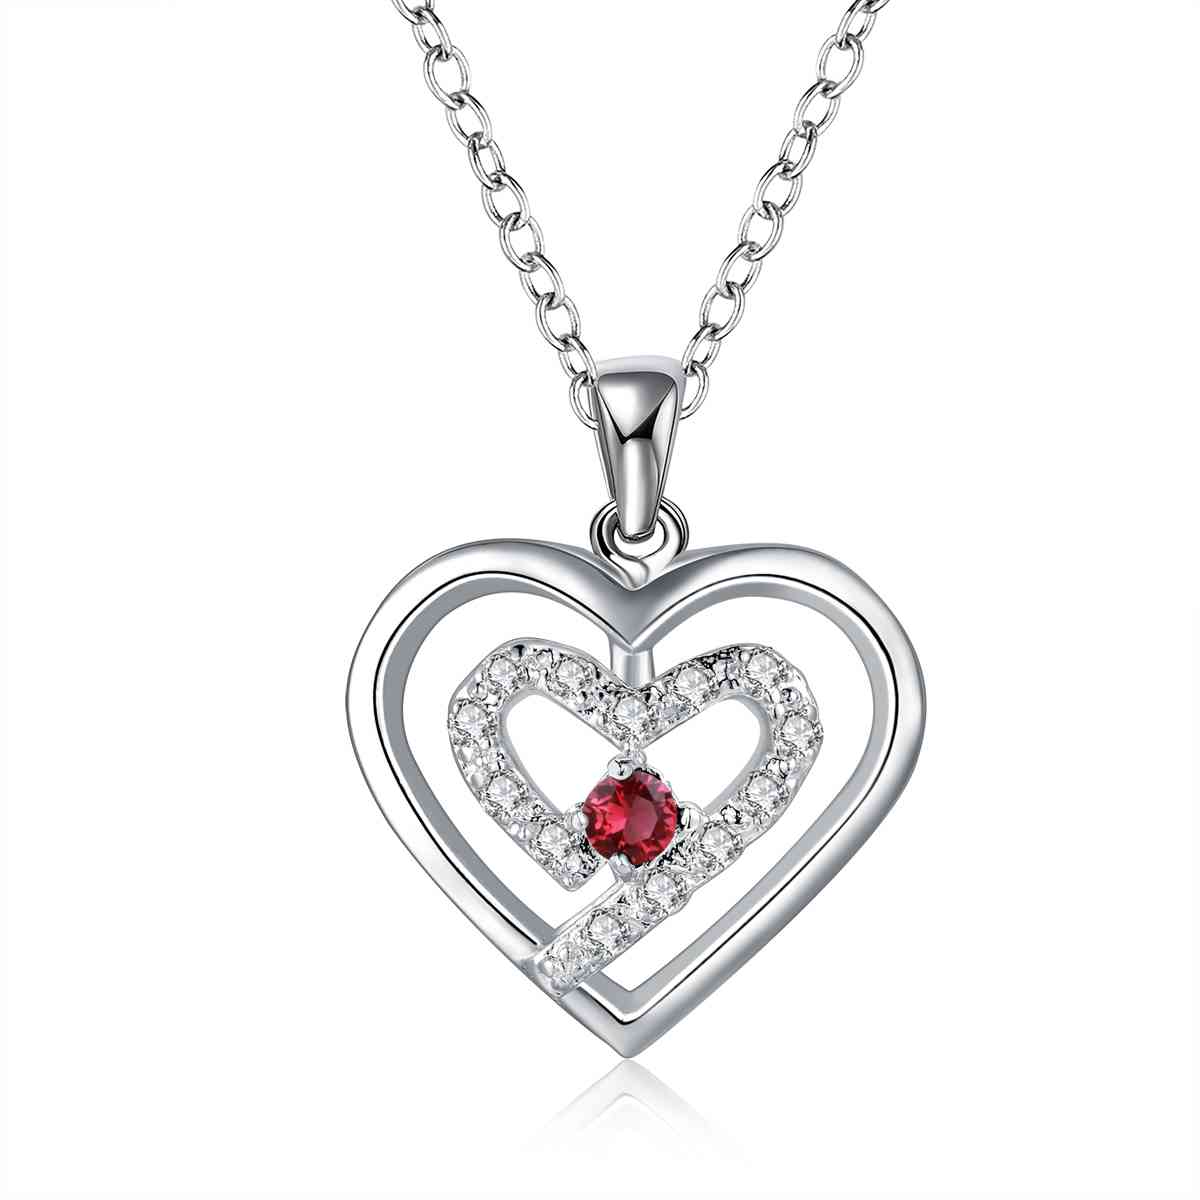 Free Shipping Newest 925 silver pendant necklace two heeart stone red collares populares bijouterie(China (Mainland))